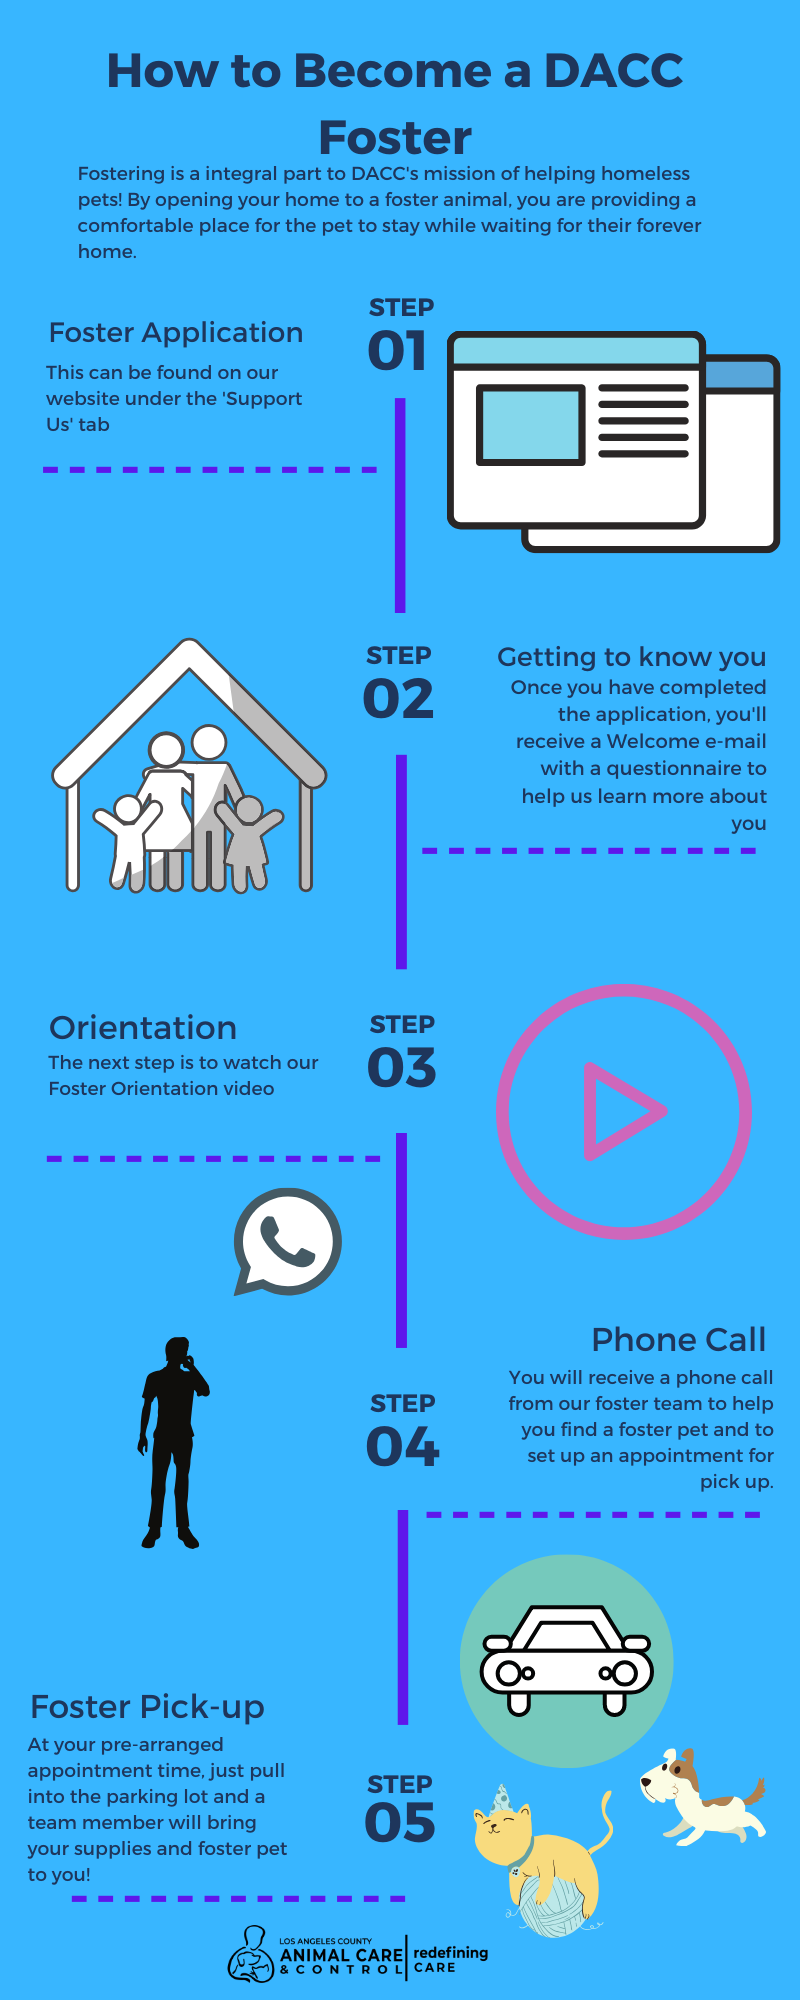 How to Become a DACC Foster